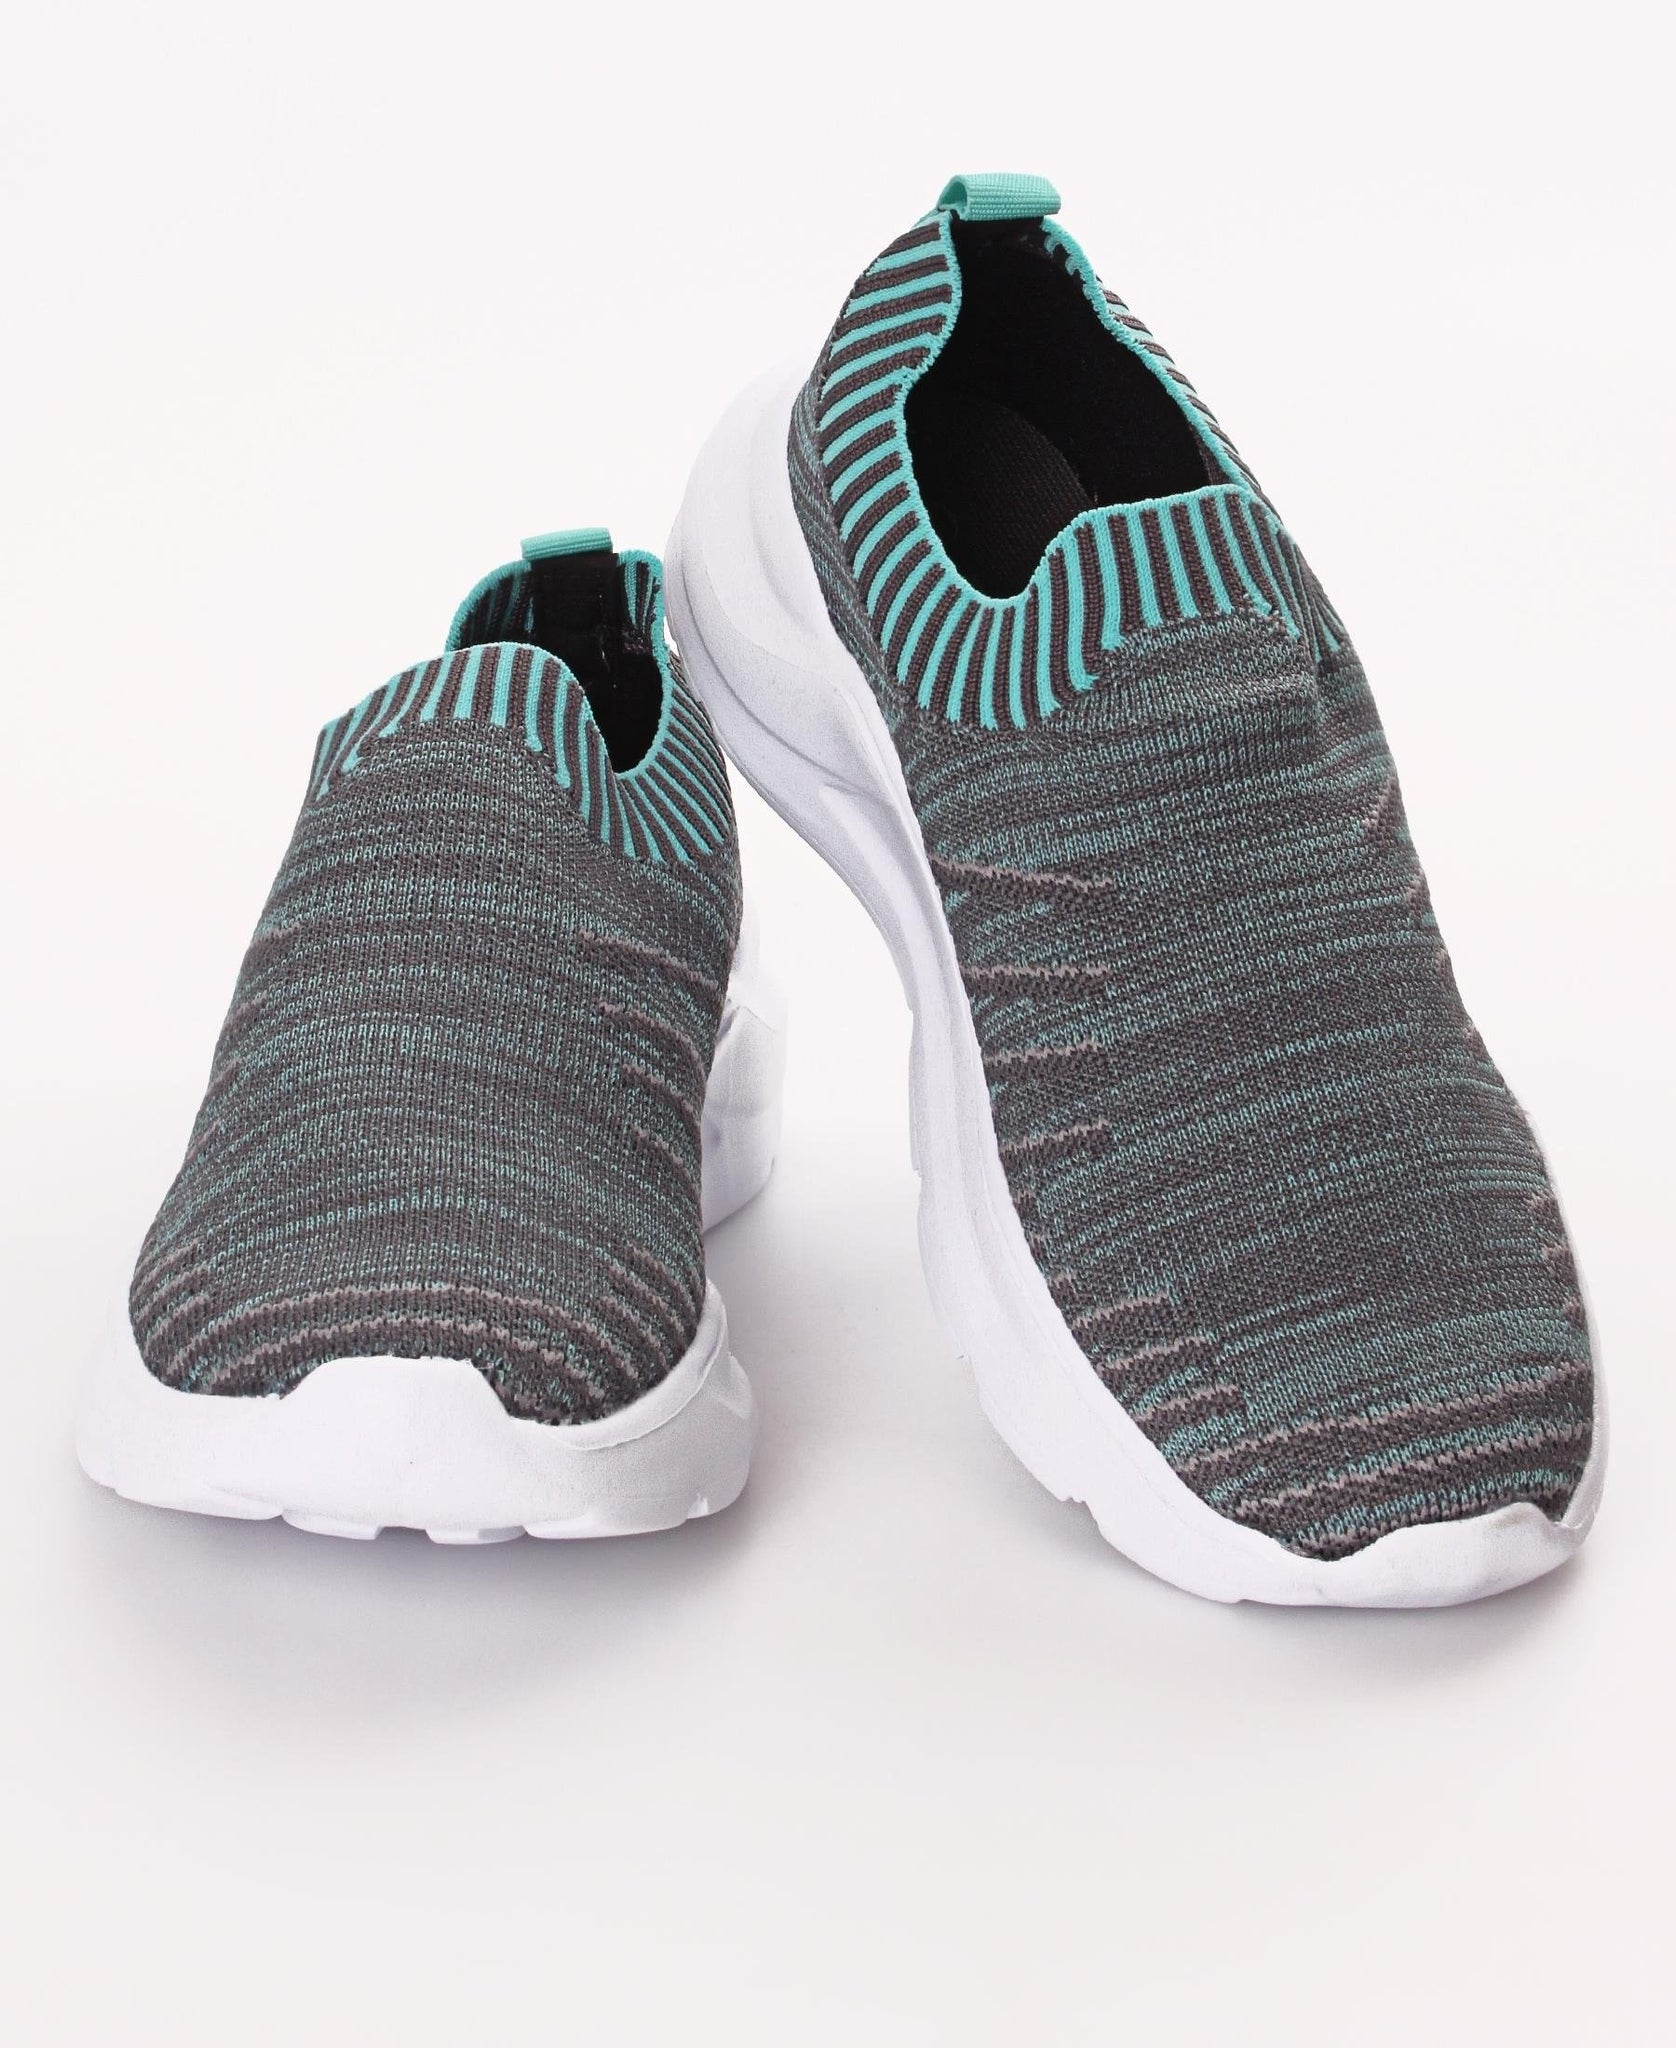 Ladies' Lunar Sneakers - Mint